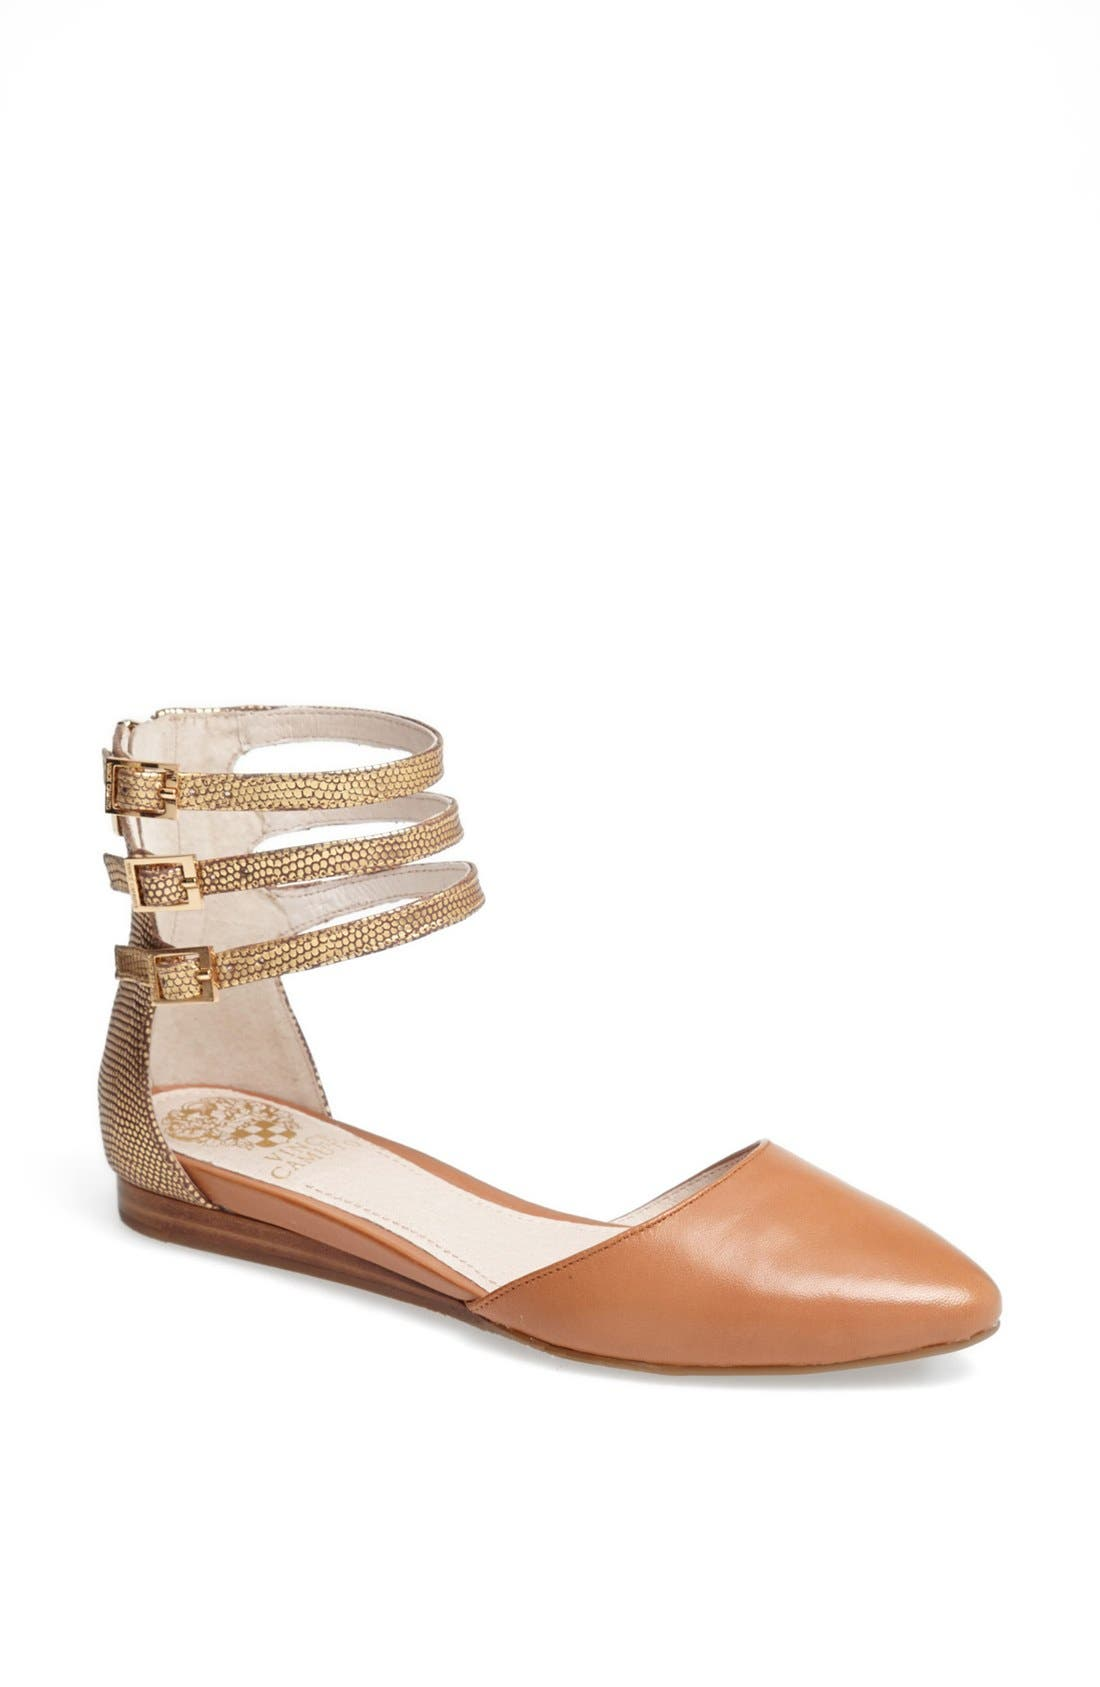 Alternate Image 1 Selected - Vince Camuto 'Wiji' Ankle Strap D'Orsay Flat